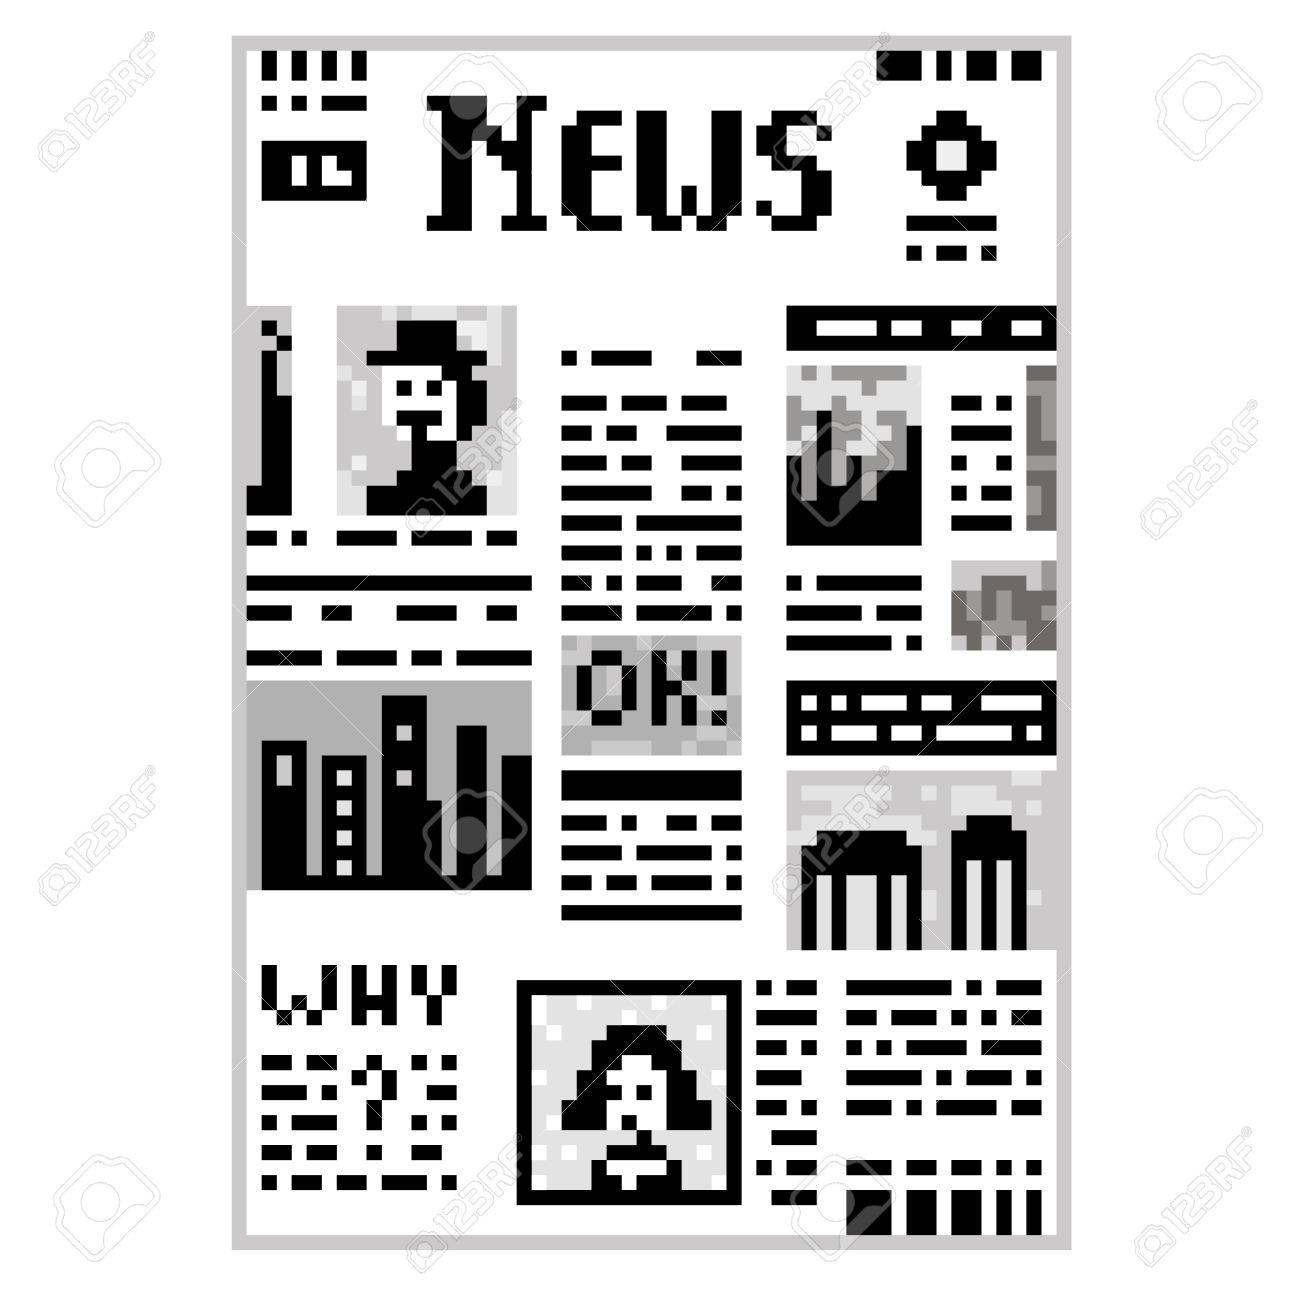 Funny Illustration Pixel Art 8 Bit Black And White Newspaper Isolated On Background With Lettering